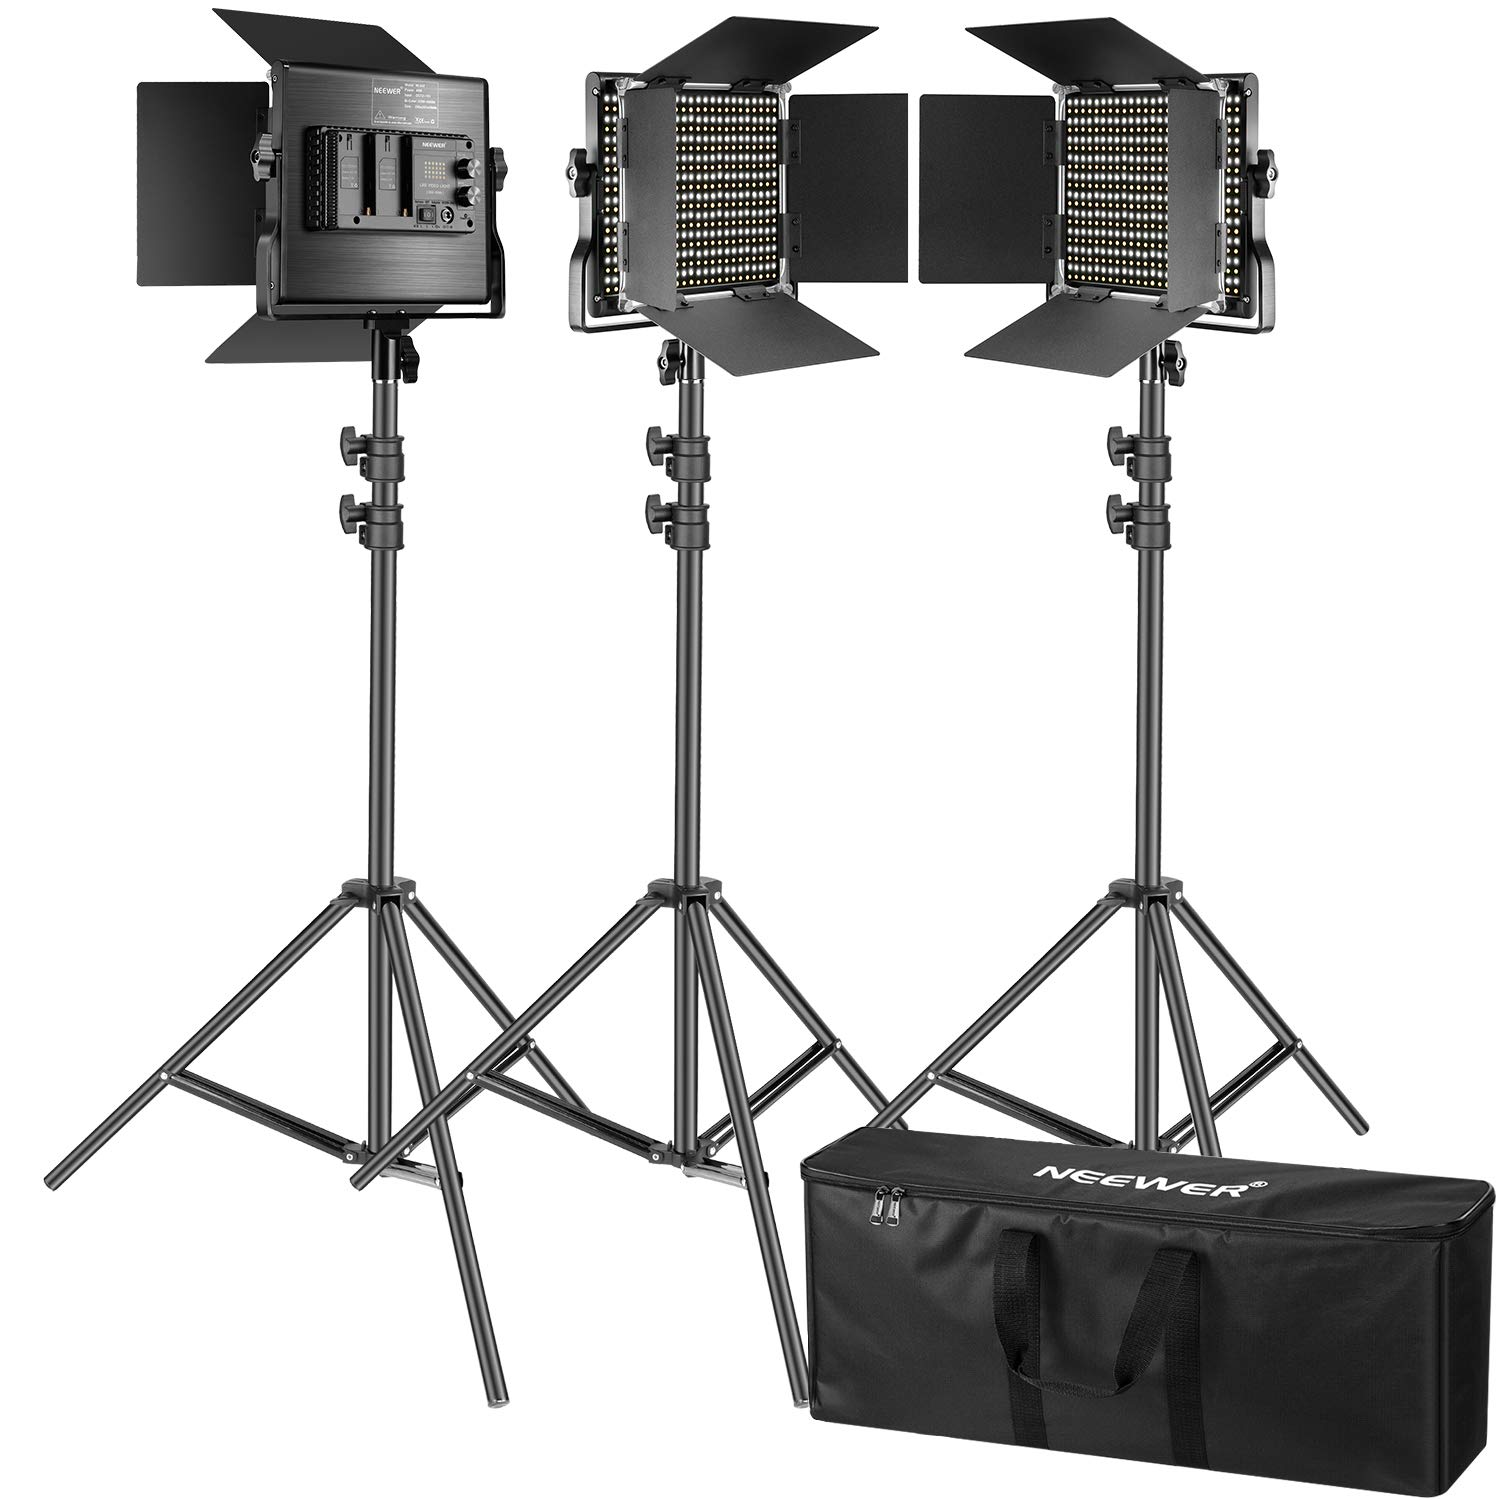 Neewer 3 Packs 660 LED Video Light Photography Lighting Kit with Stand: Dimmable 3200-5600K CRI96+ LED Panel, Premium 200cm Light Stand for Studio YouTube Video Outdoor Shooting by Neewer